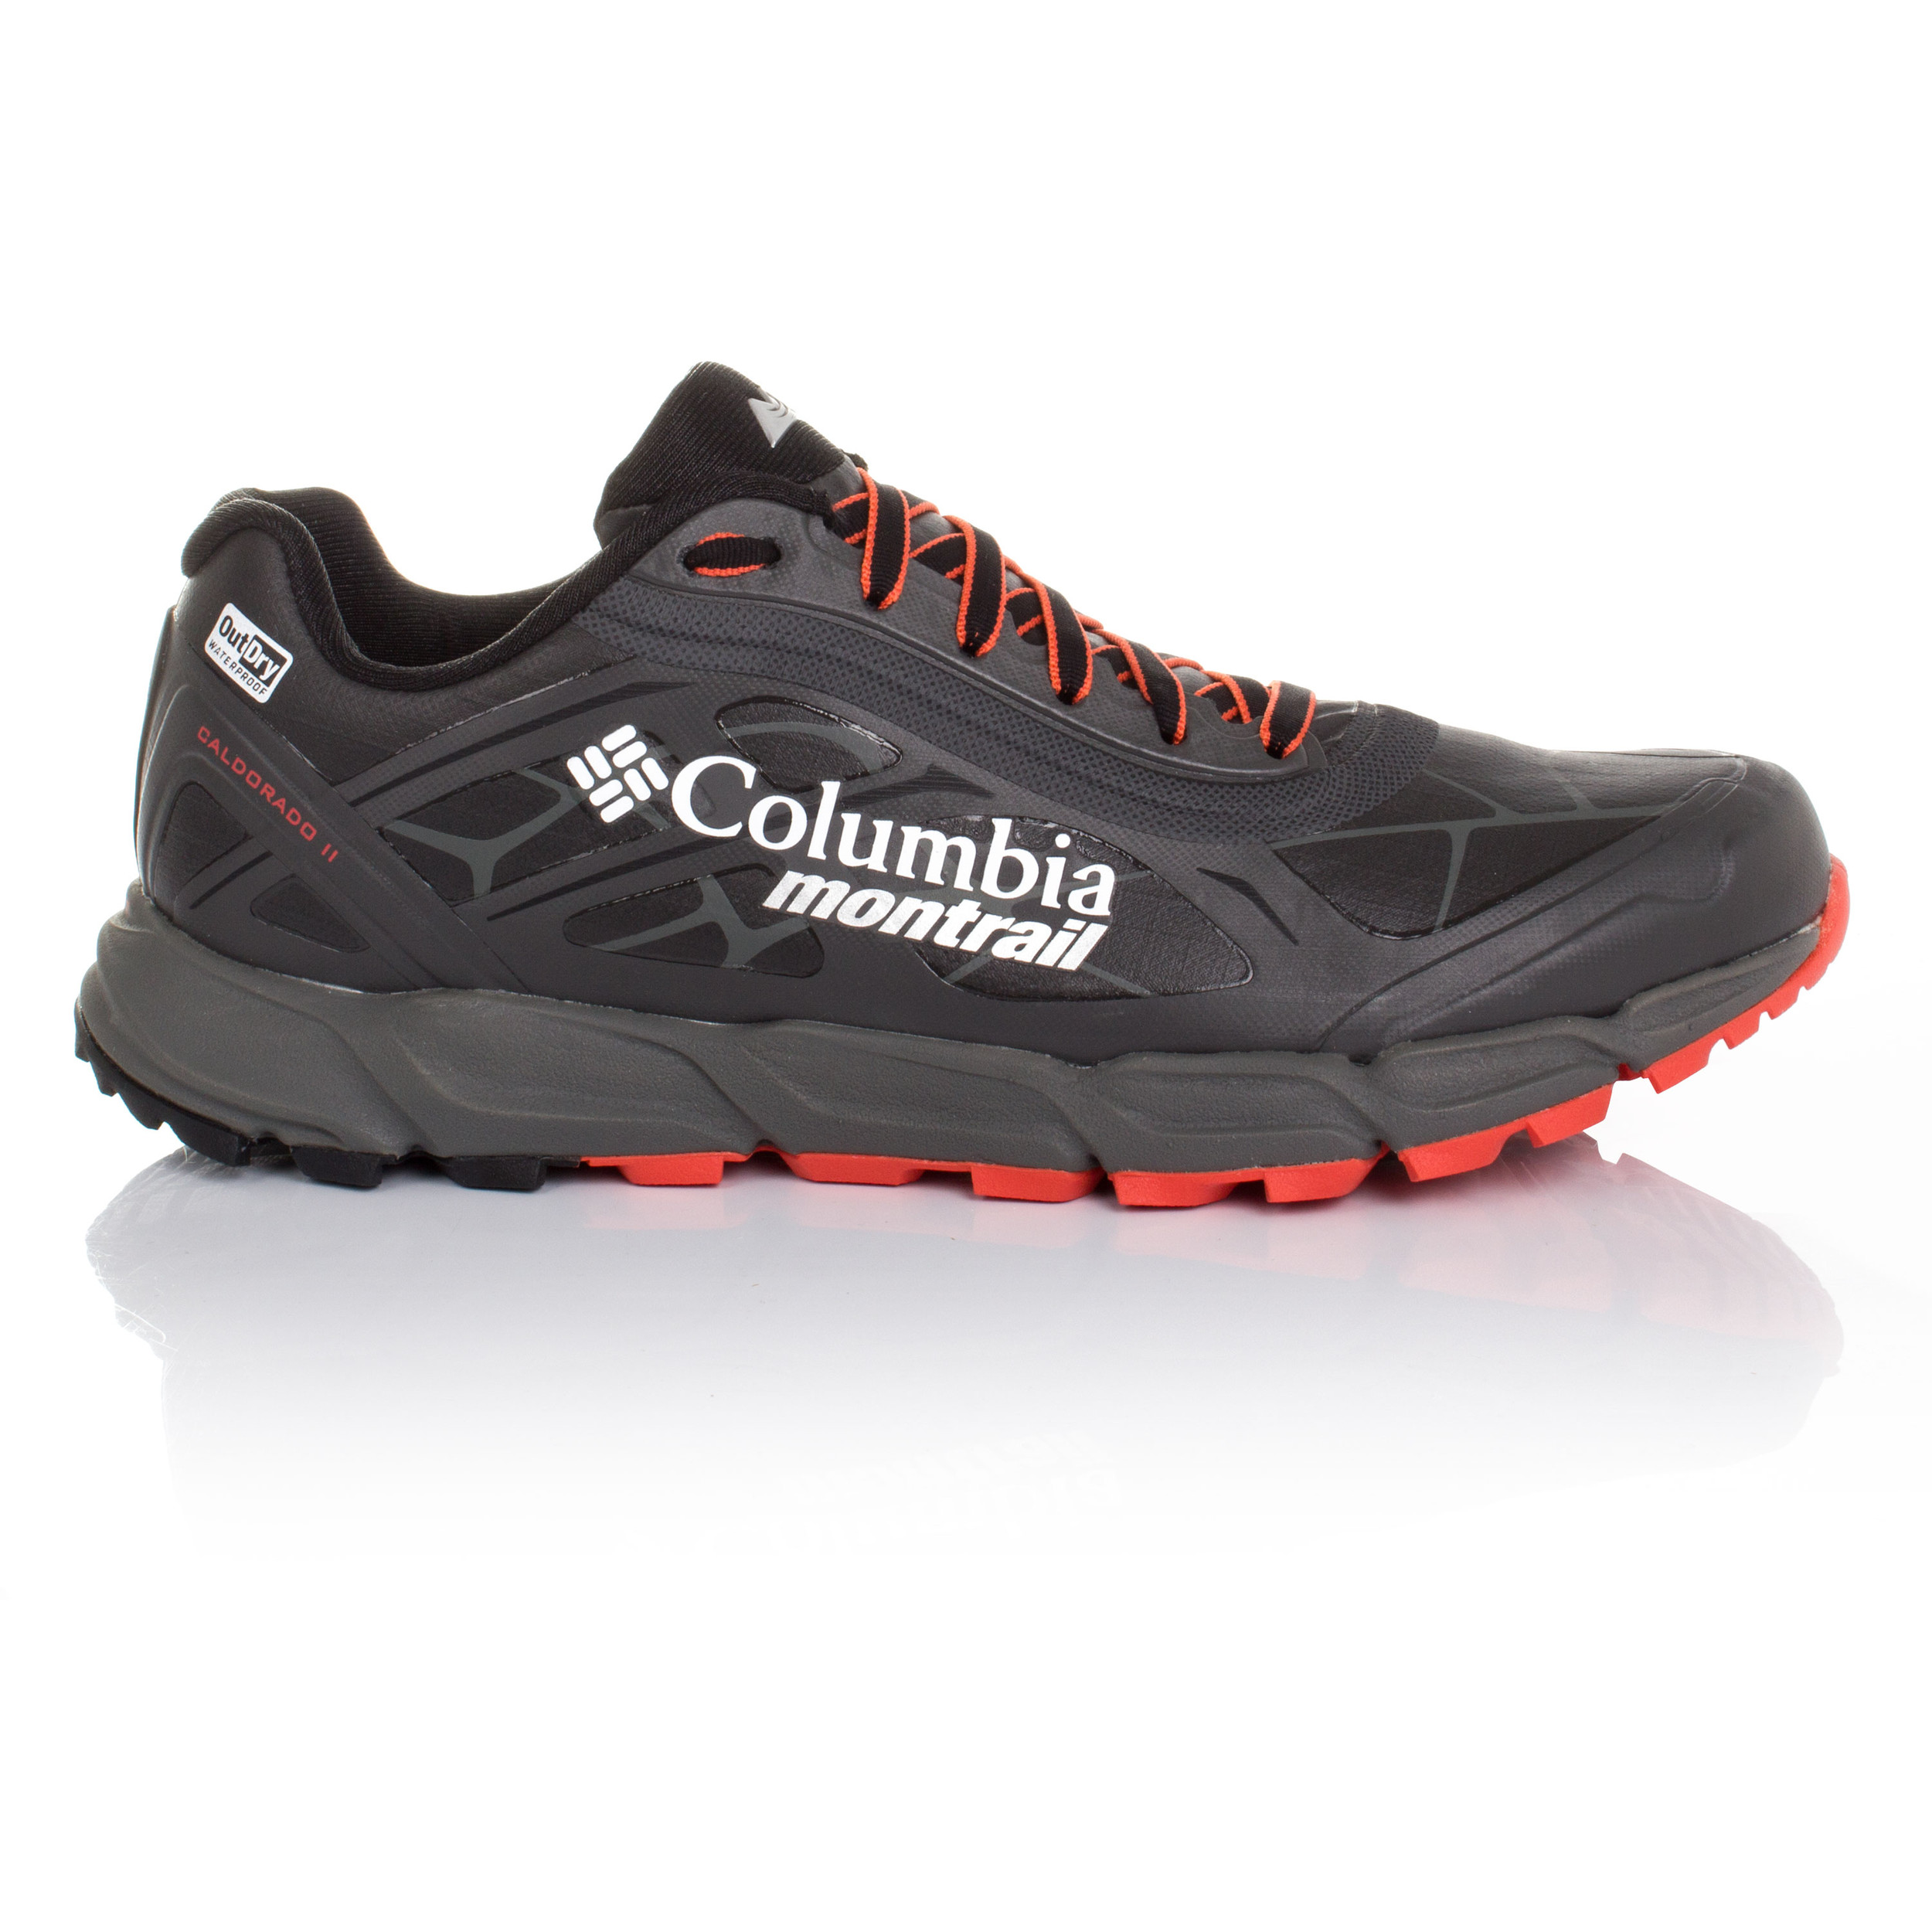 Columbia Caldorado II Outdry Women's Waterproof Trail Laufschuhe - 42 6t5Ji4t